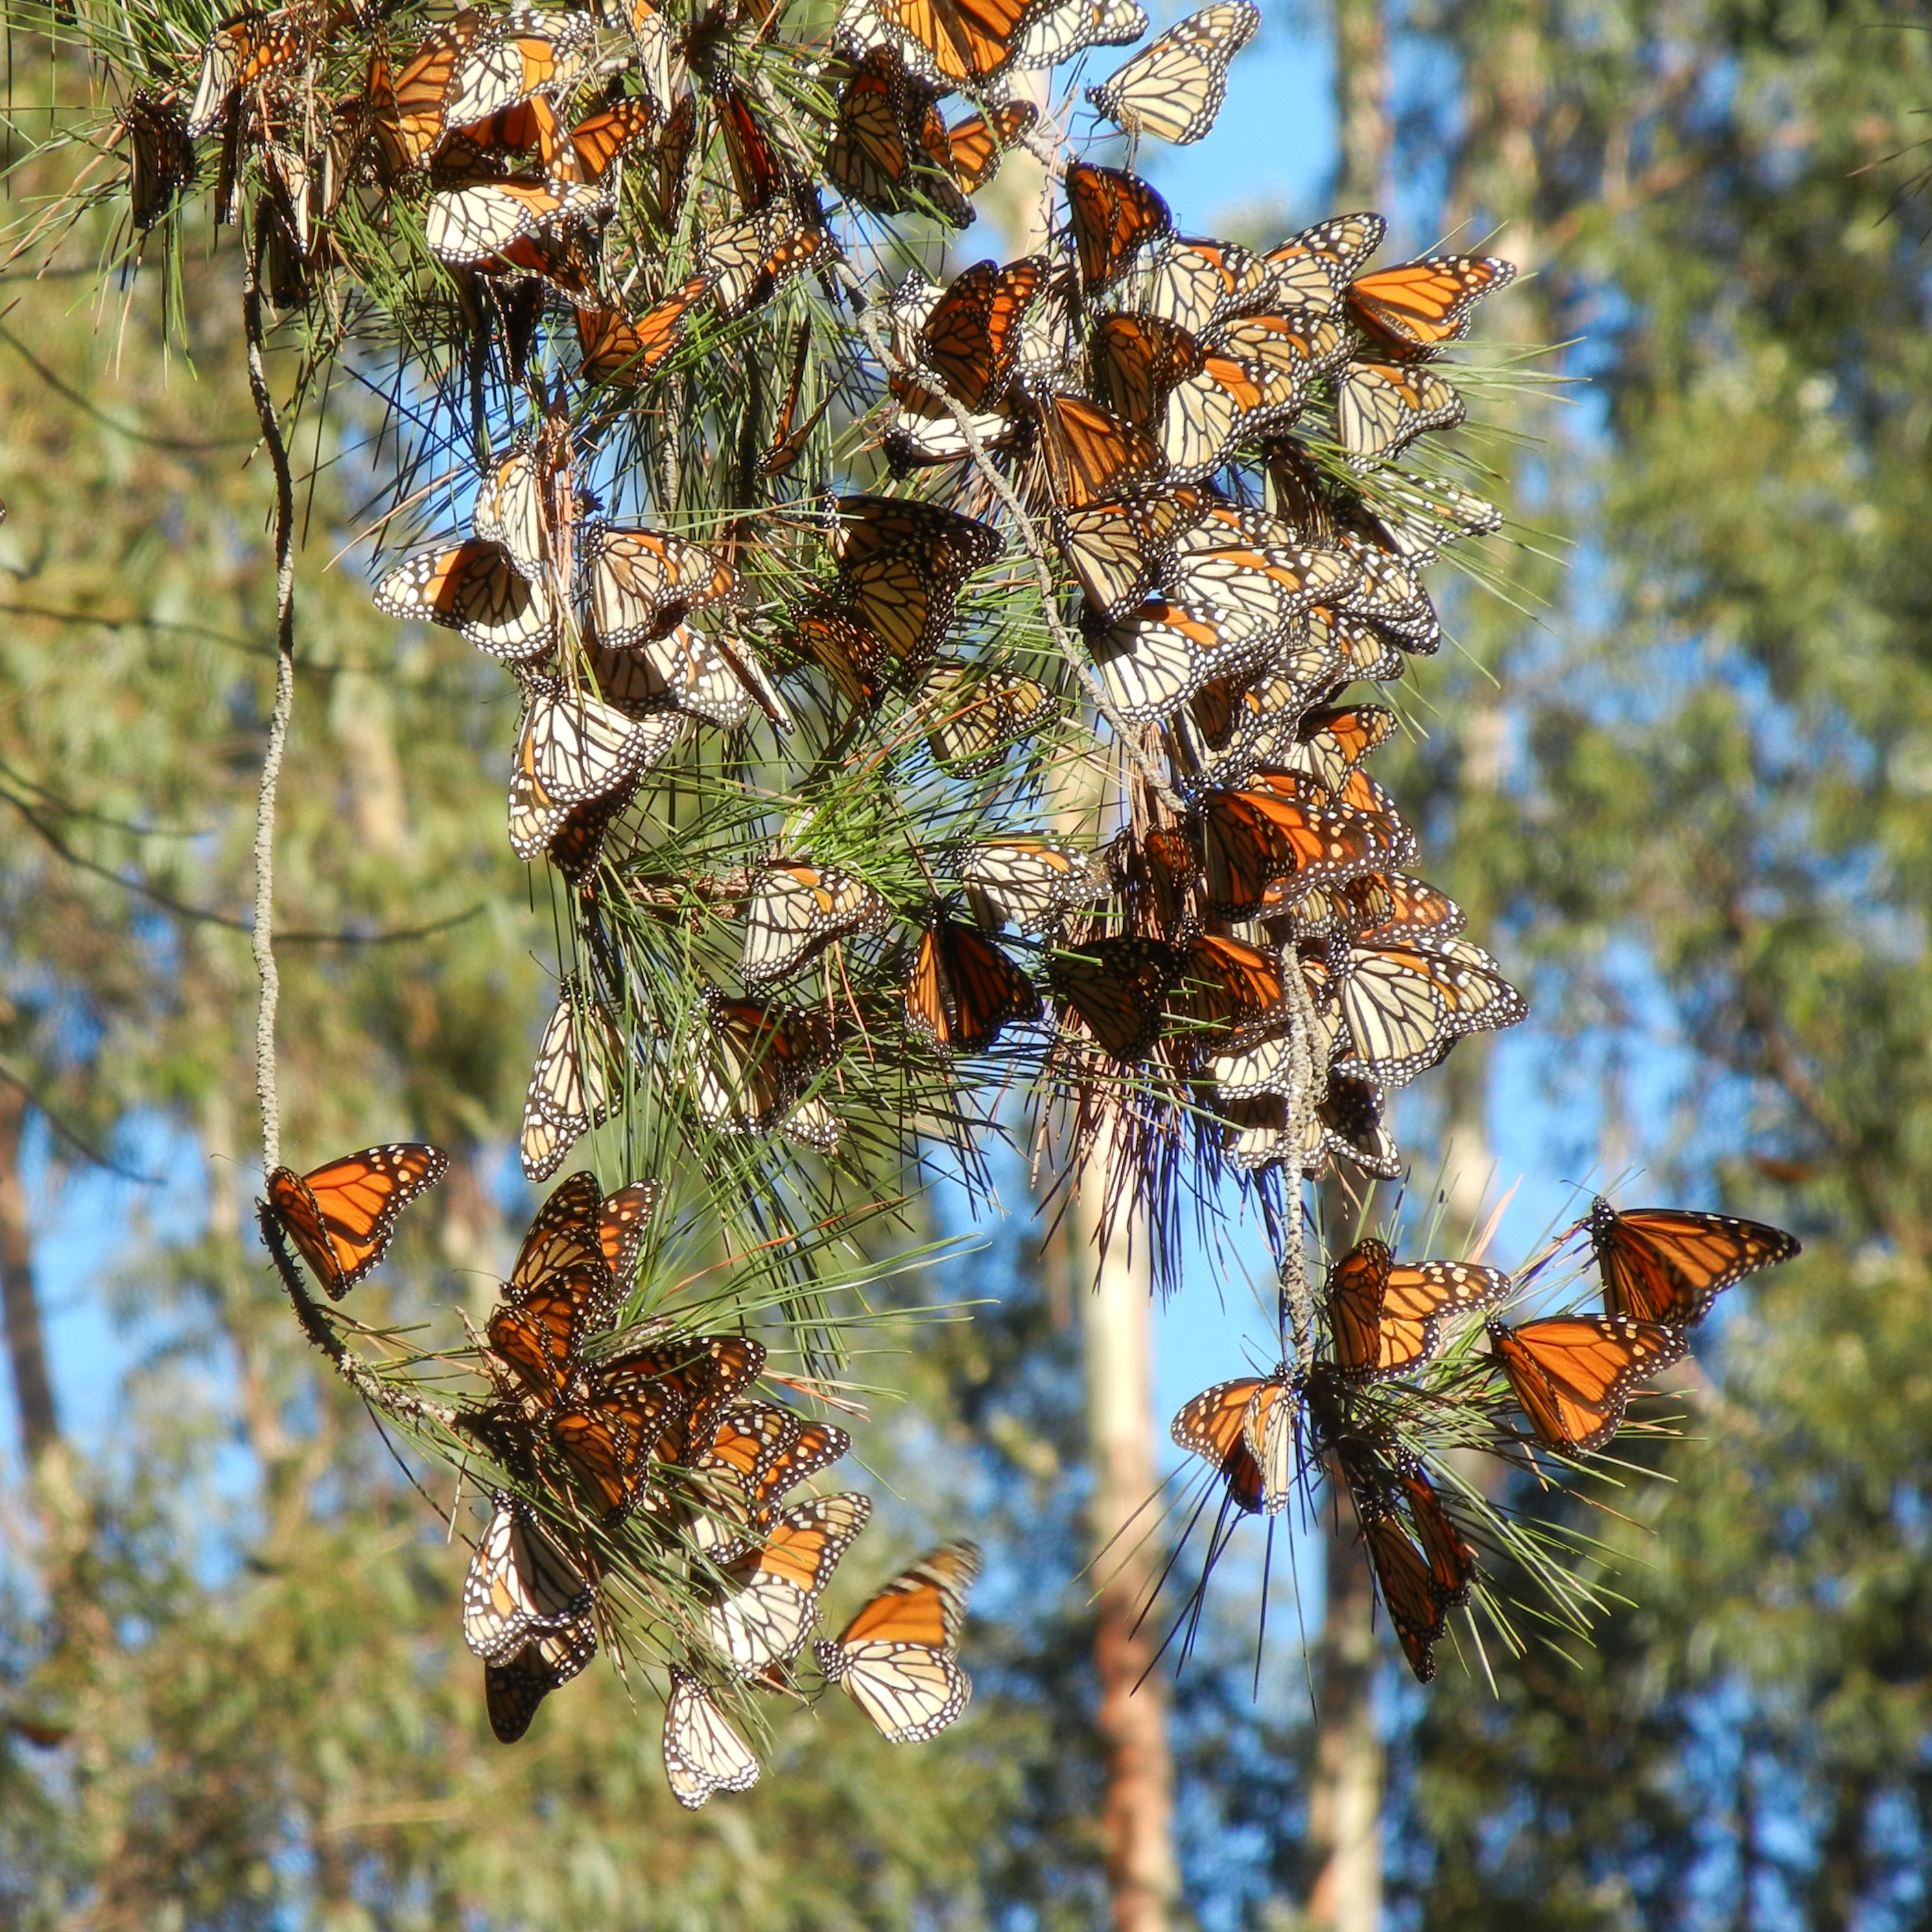 Monarchs cluster on a pine branch. The butterflies that have their wings closed are duller in color, resembling dead leaves. The butterflies with their wings open display a vibrant orange hue.